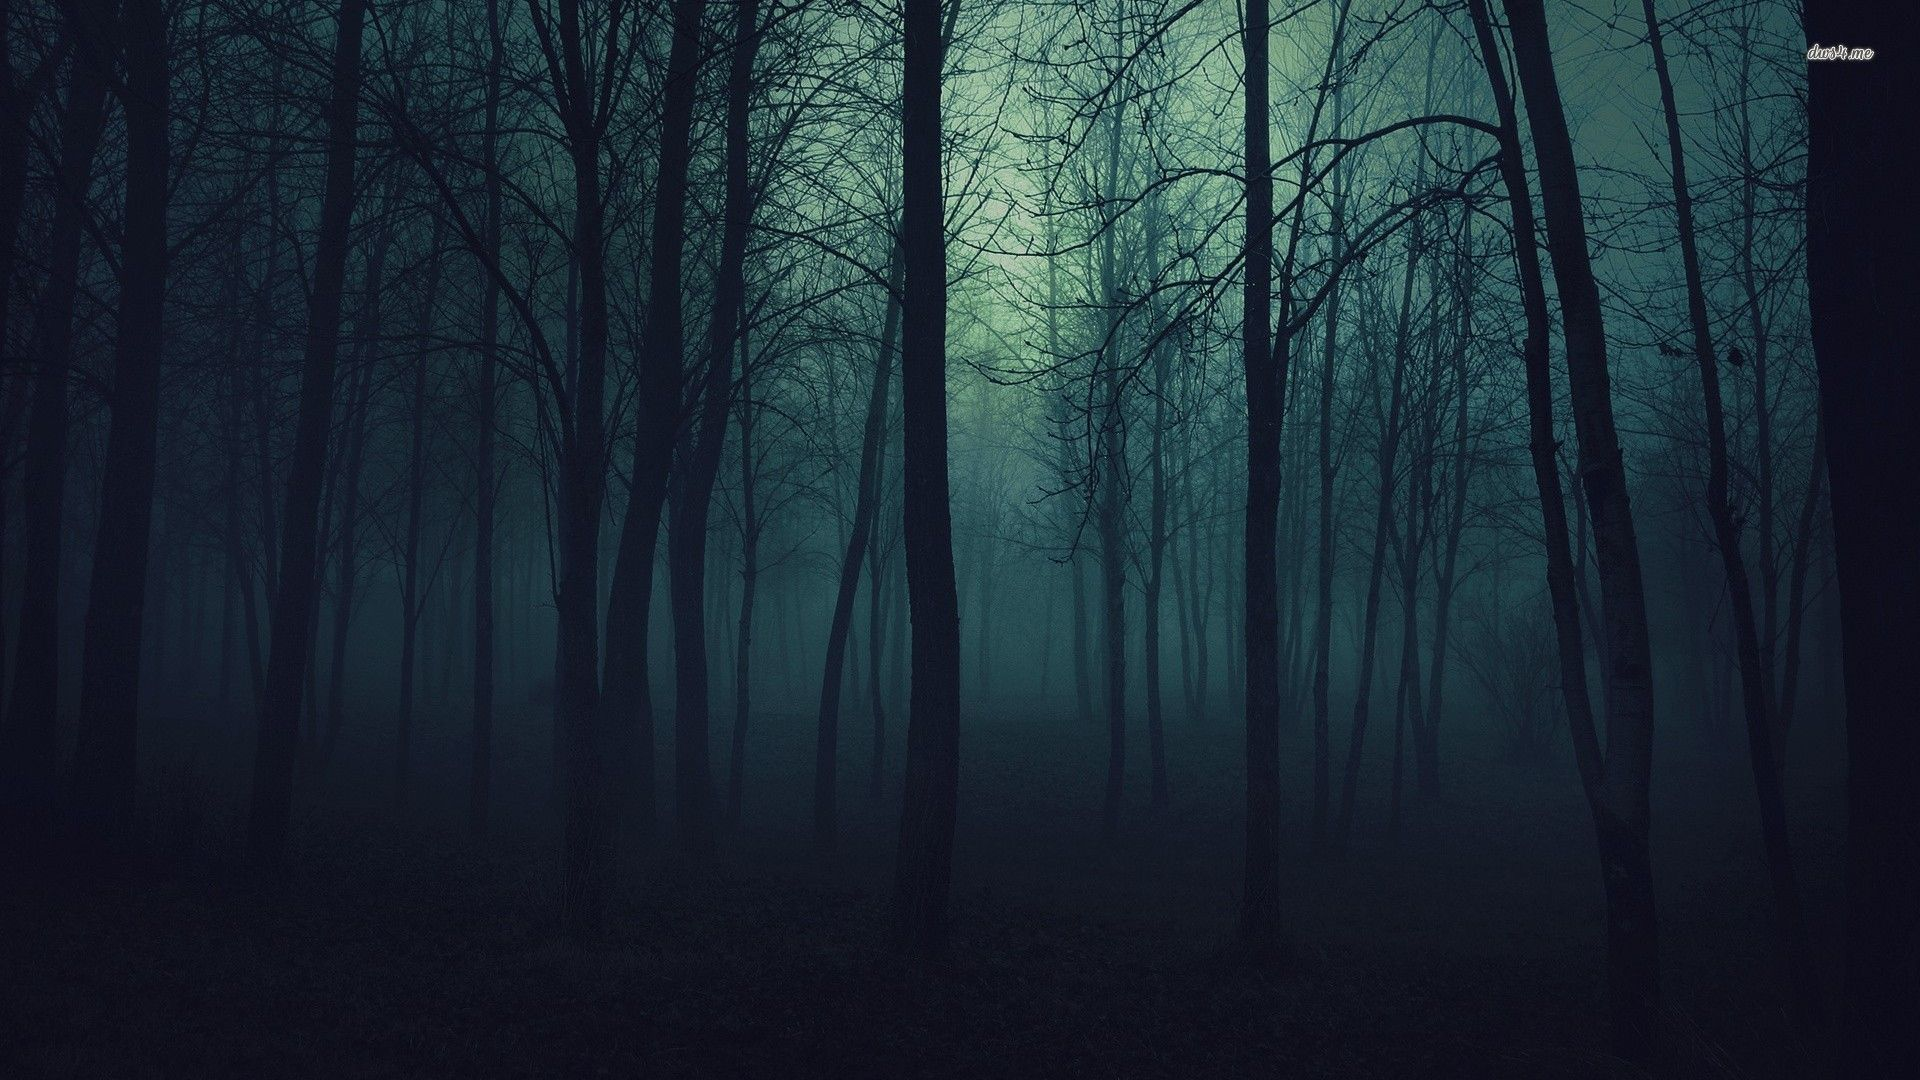 Dark forest backgrounds wallpapertags dark forest hd tablet dark forest backgrounds wallpapertags dark forest hd tablet smartphone wallpaper voltagebd Choice Image